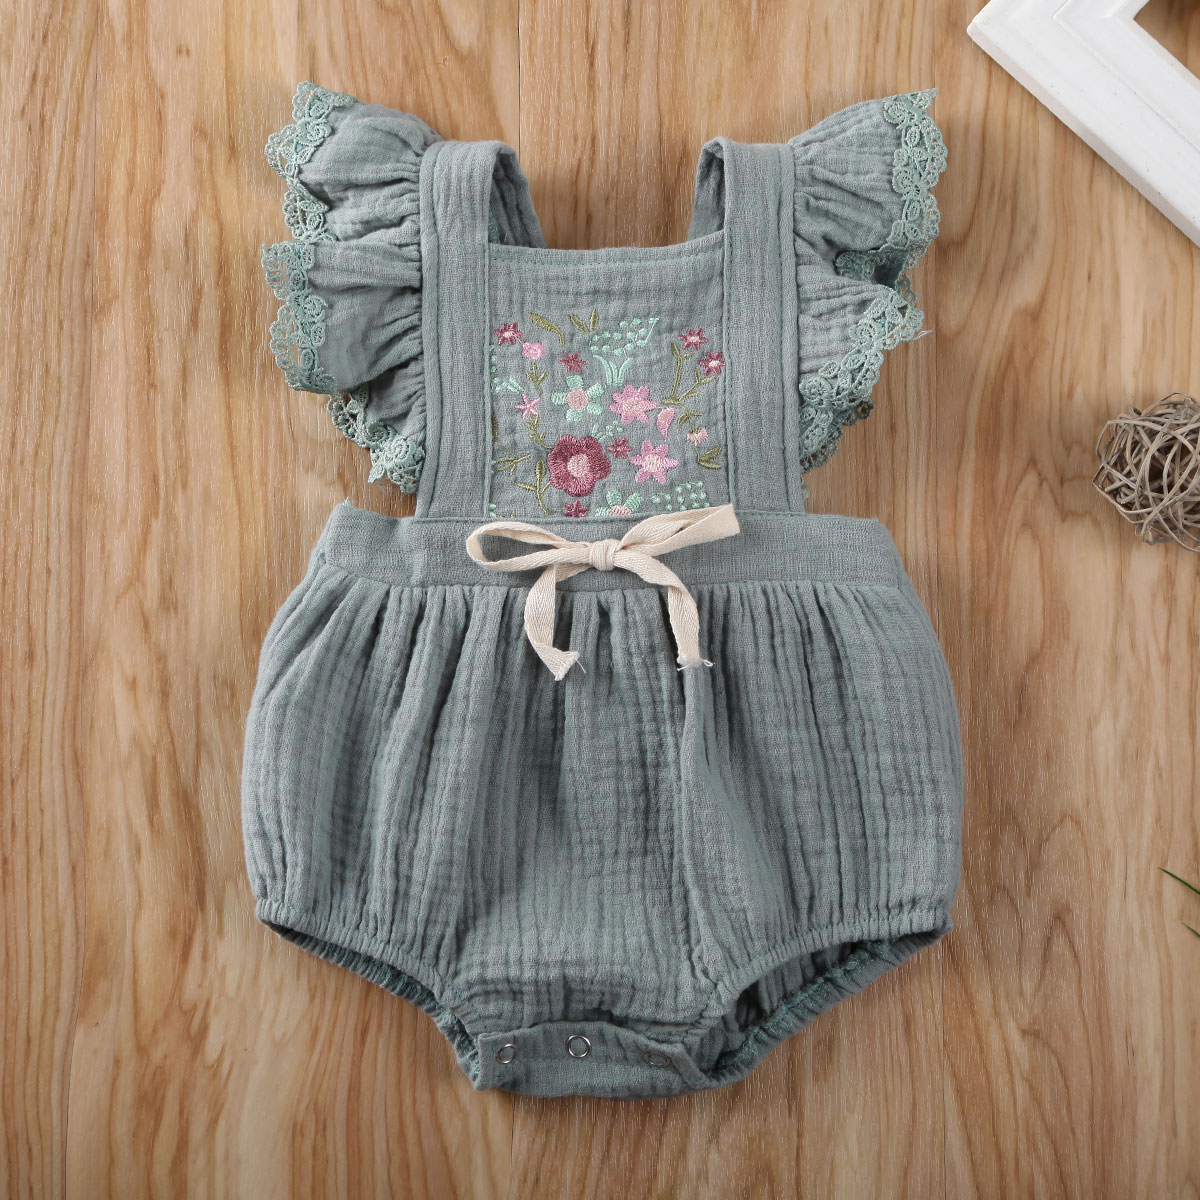 Pudcoco Newborn Baby Girl Clothes Flower Print Sleeveless Knitted Cotton Romper Jumpsuit One-Piece Outfit Sunsuit Clothes